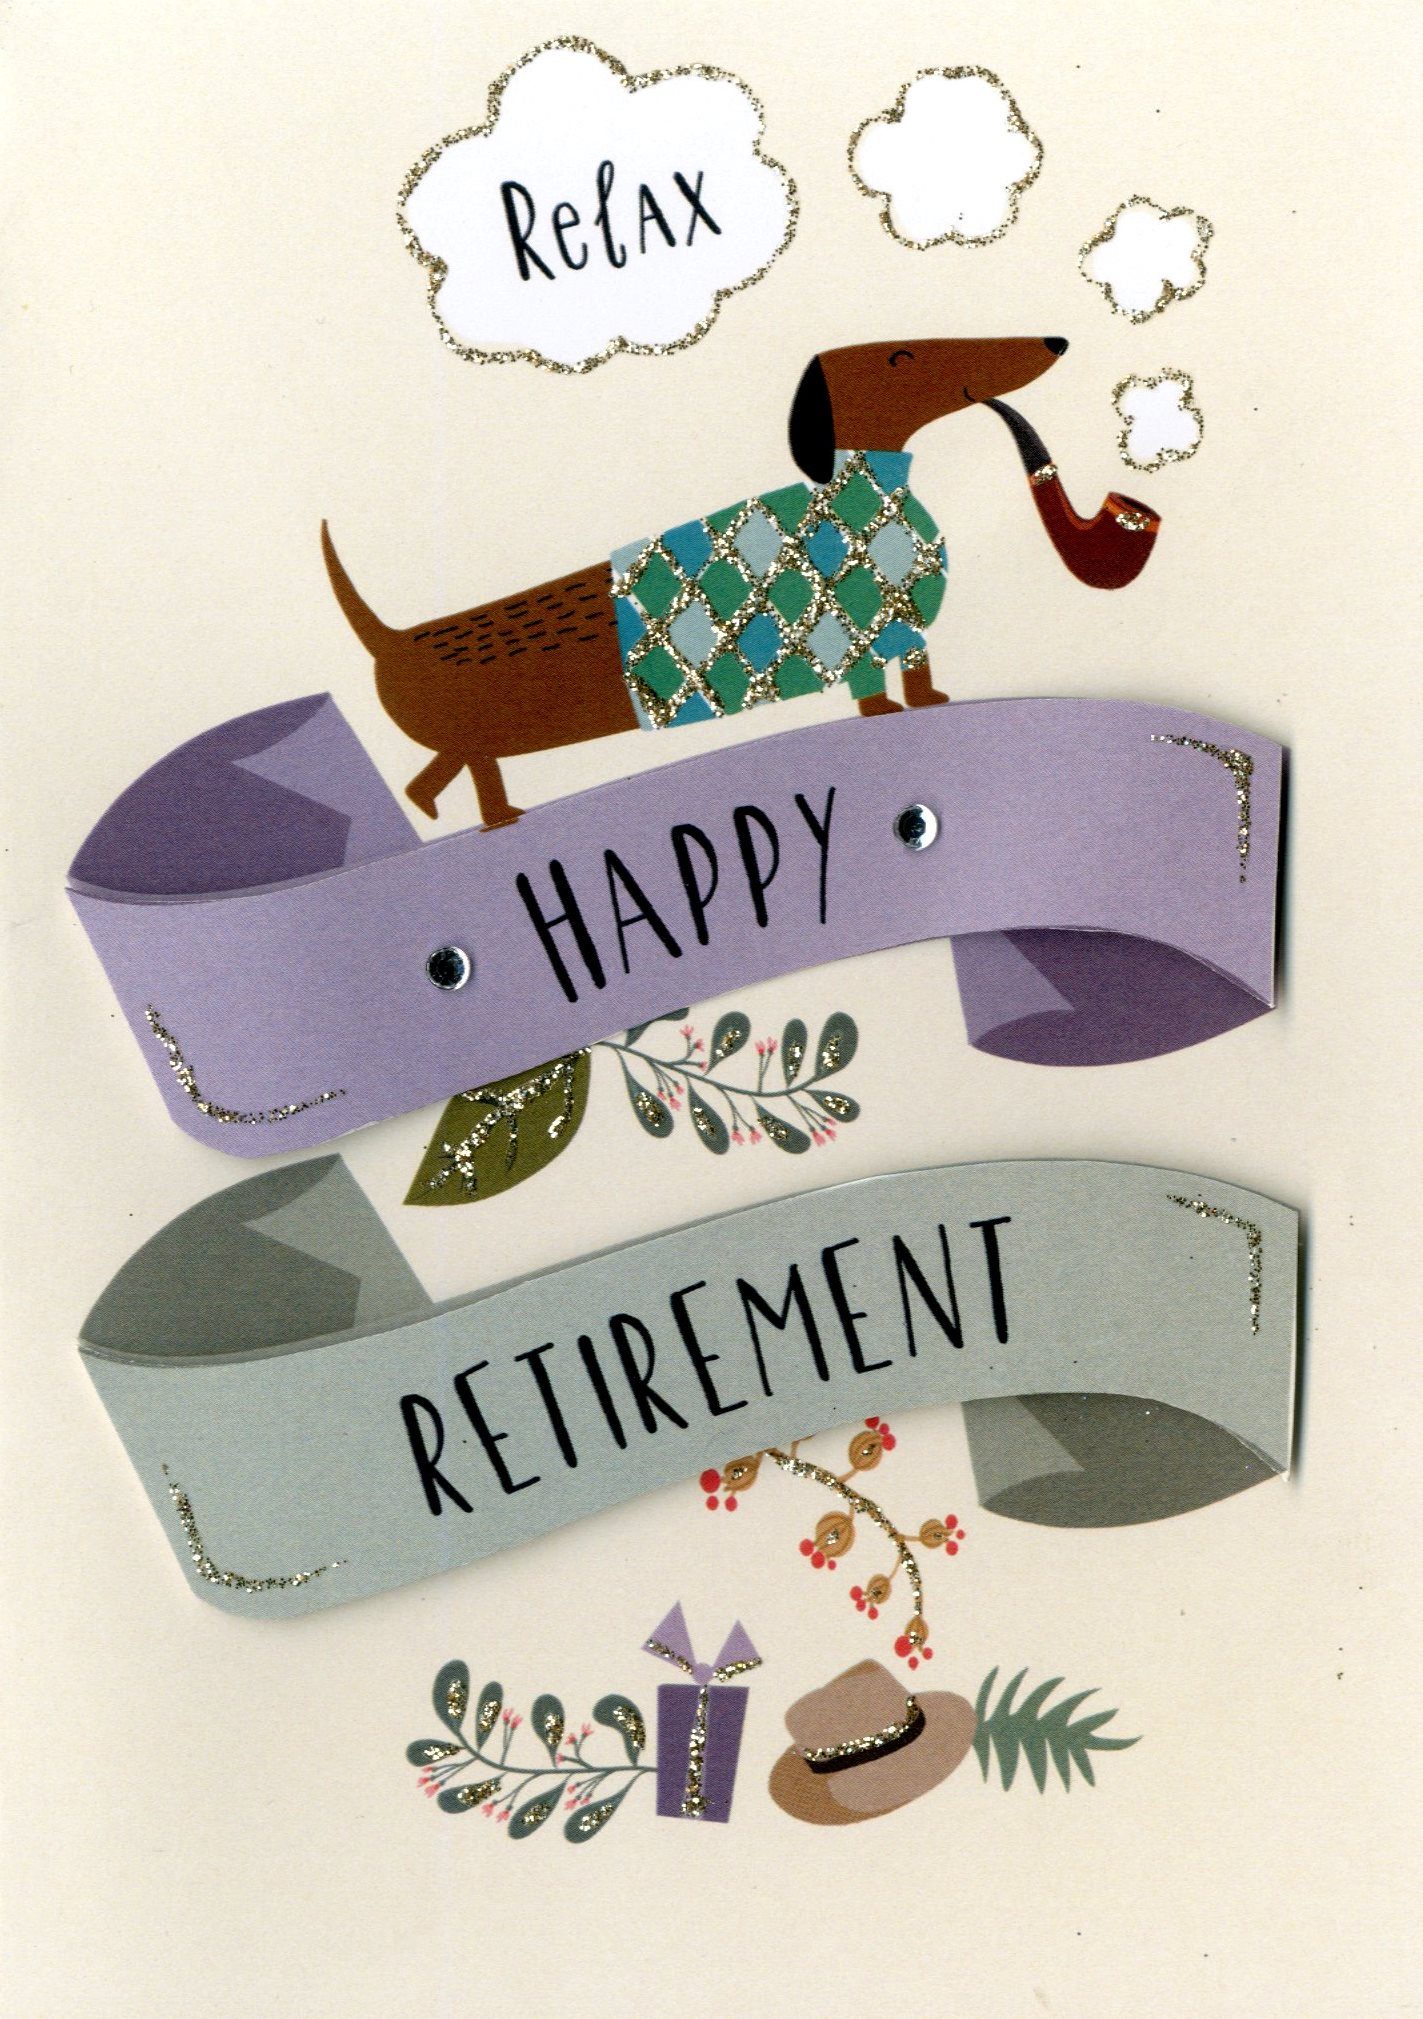 Happy retirement greeting card cards love kates happy retirement greeting card m4hsunfo